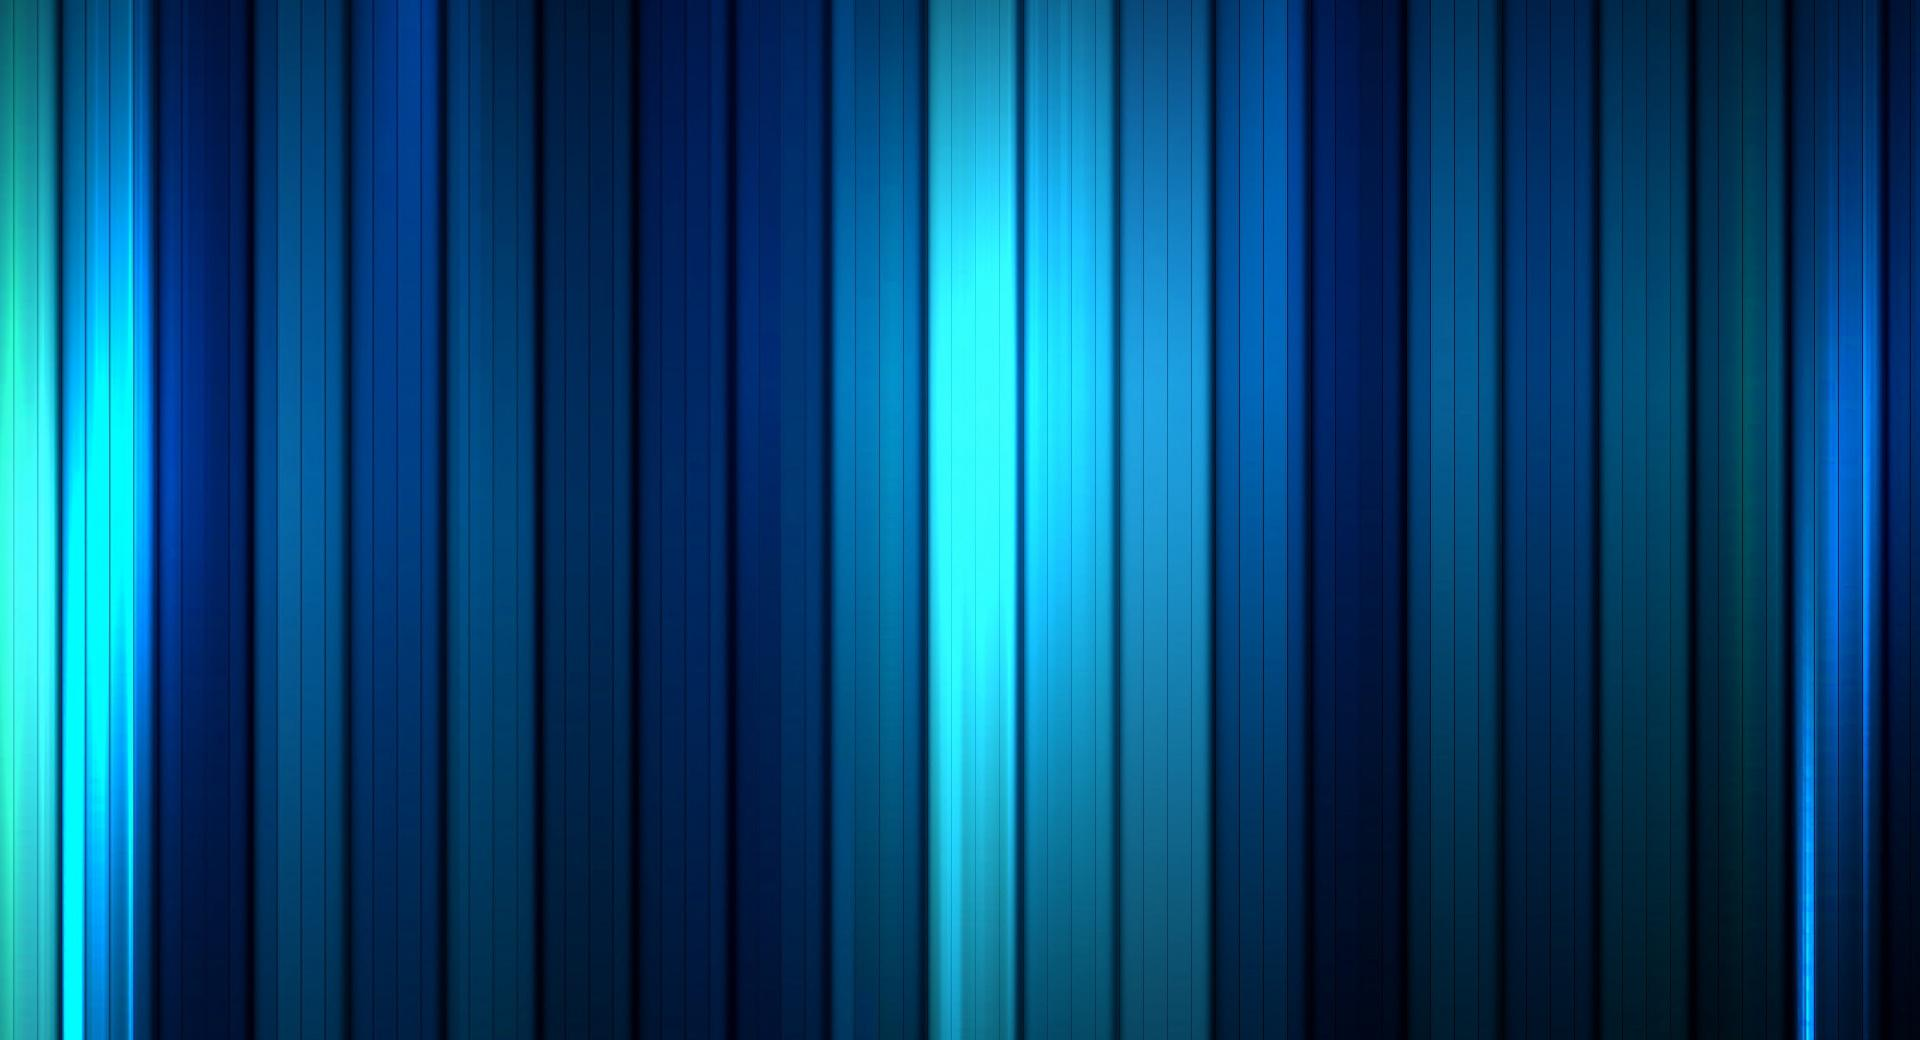 Blue Shades at 1024 x 1024 iPad size wallpapers HD quality